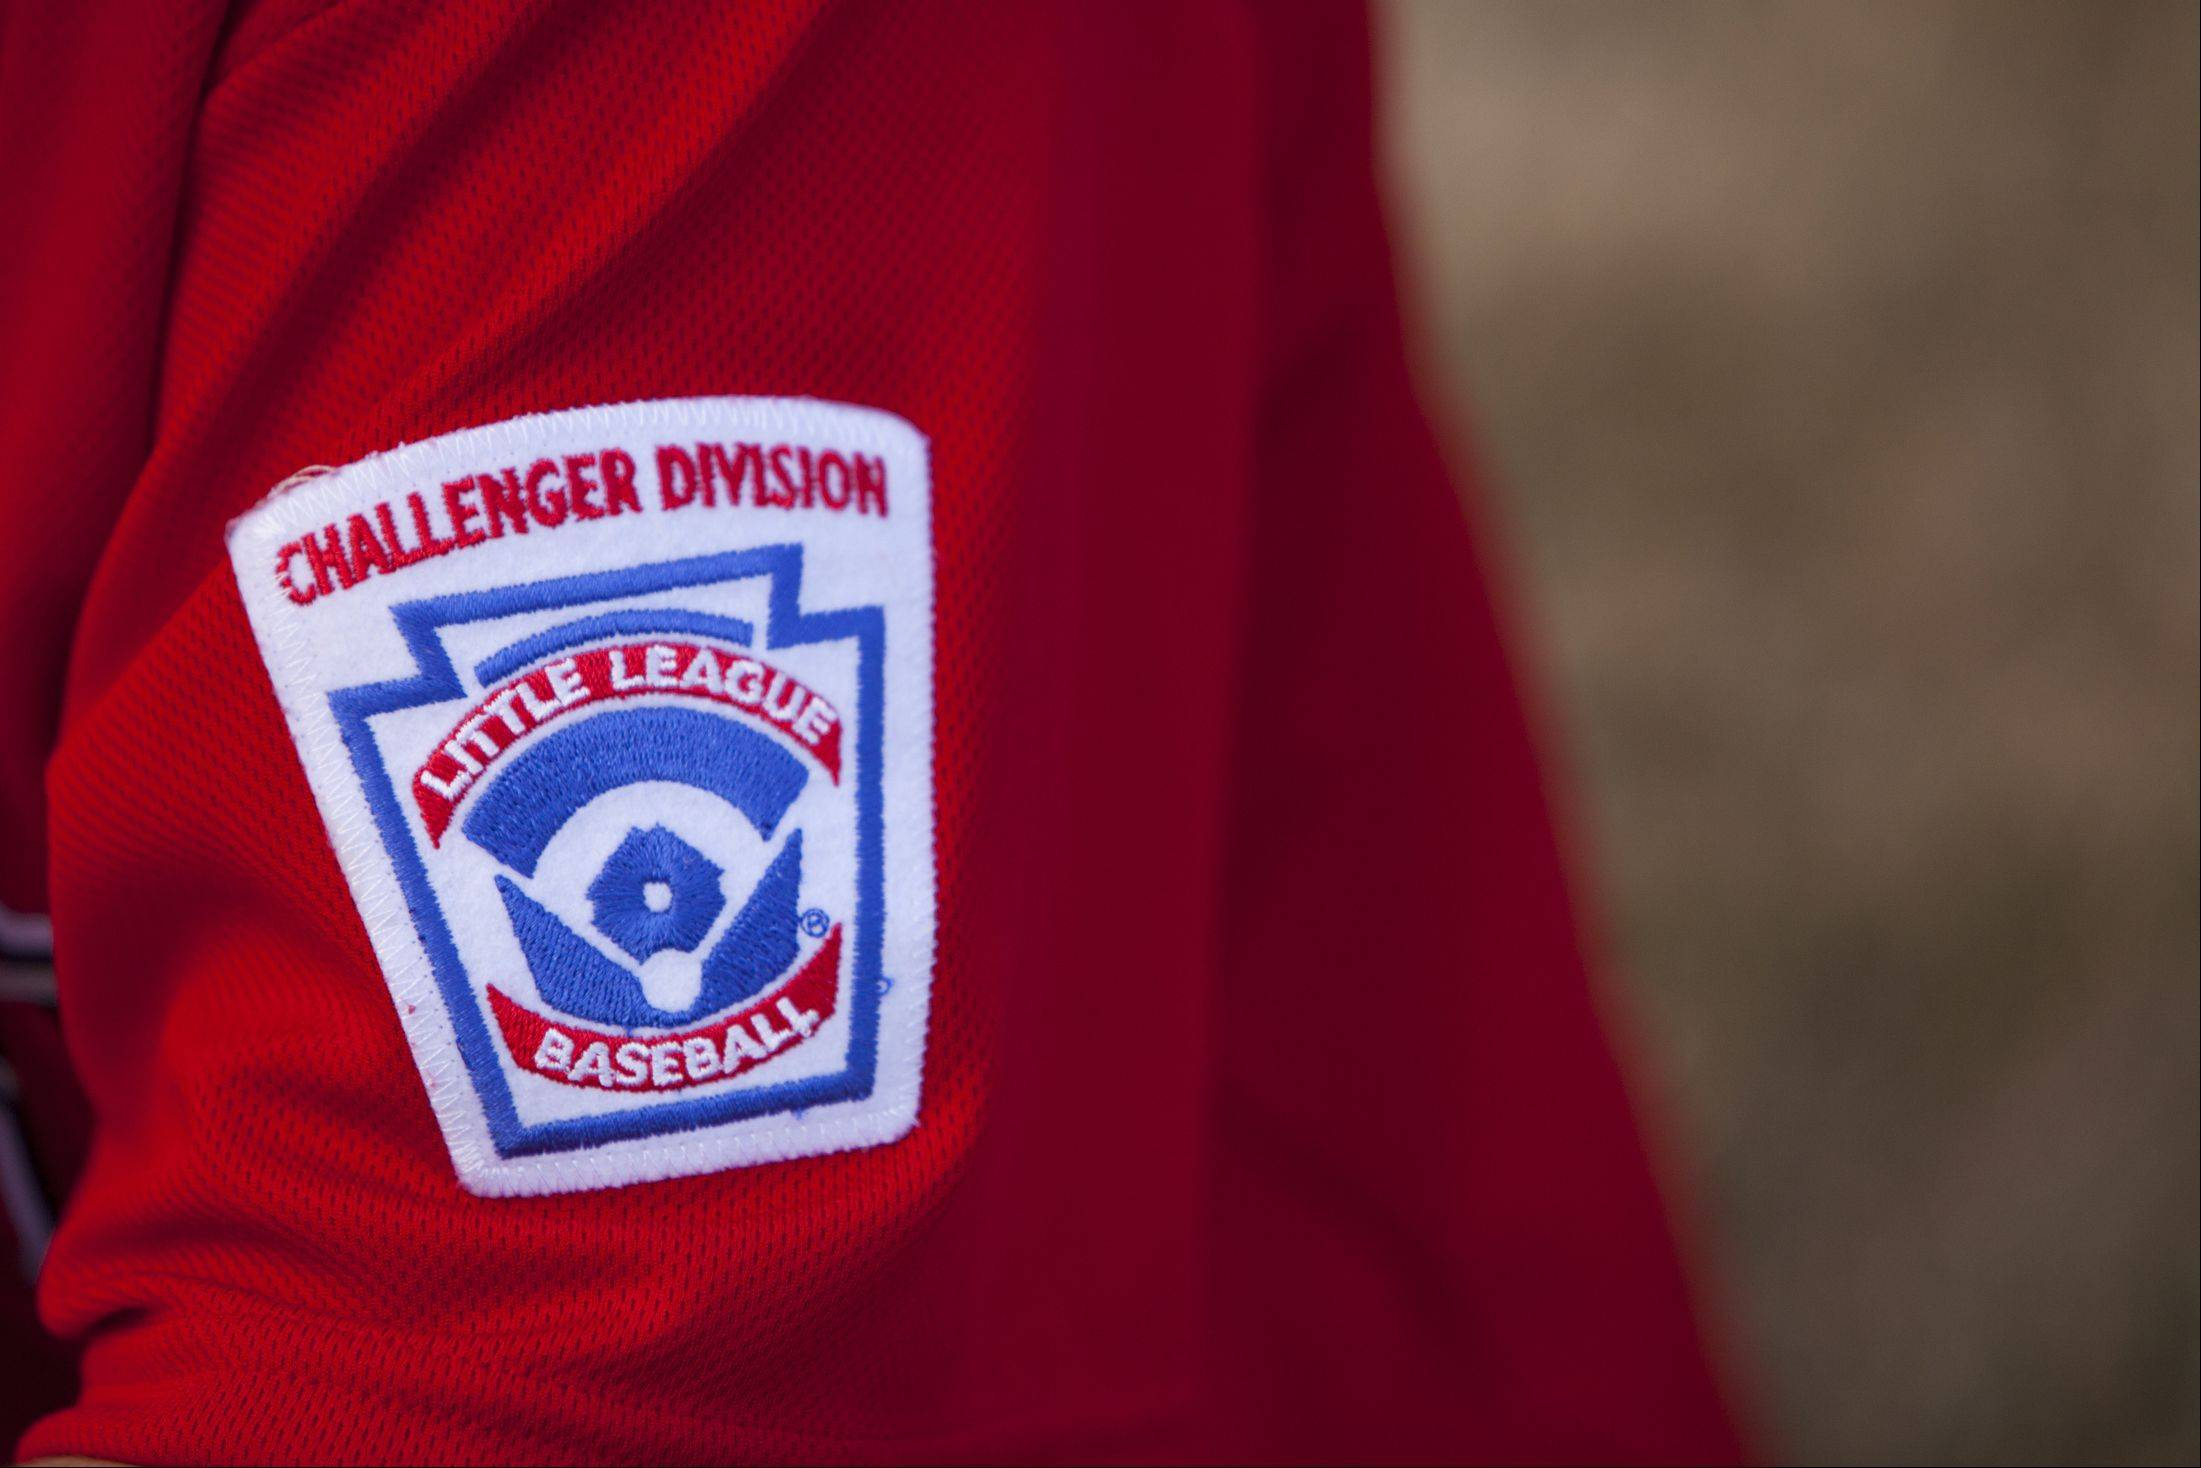 The Bartlett Little League Challenger Division patch is worn on all the players' jerseys.